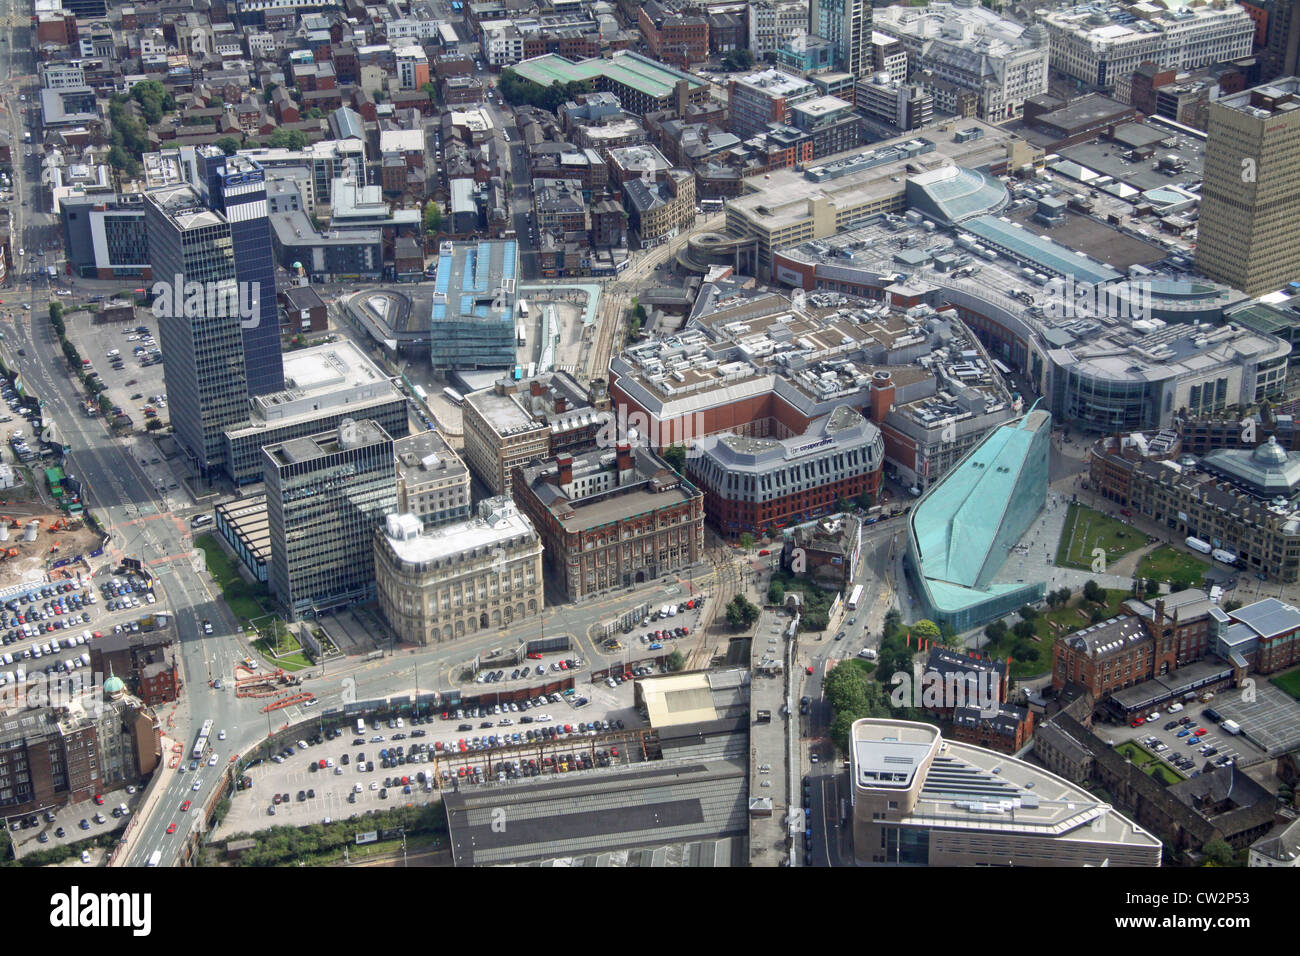 aerial view of Manchester city centre, Deansgate area - Stock Image